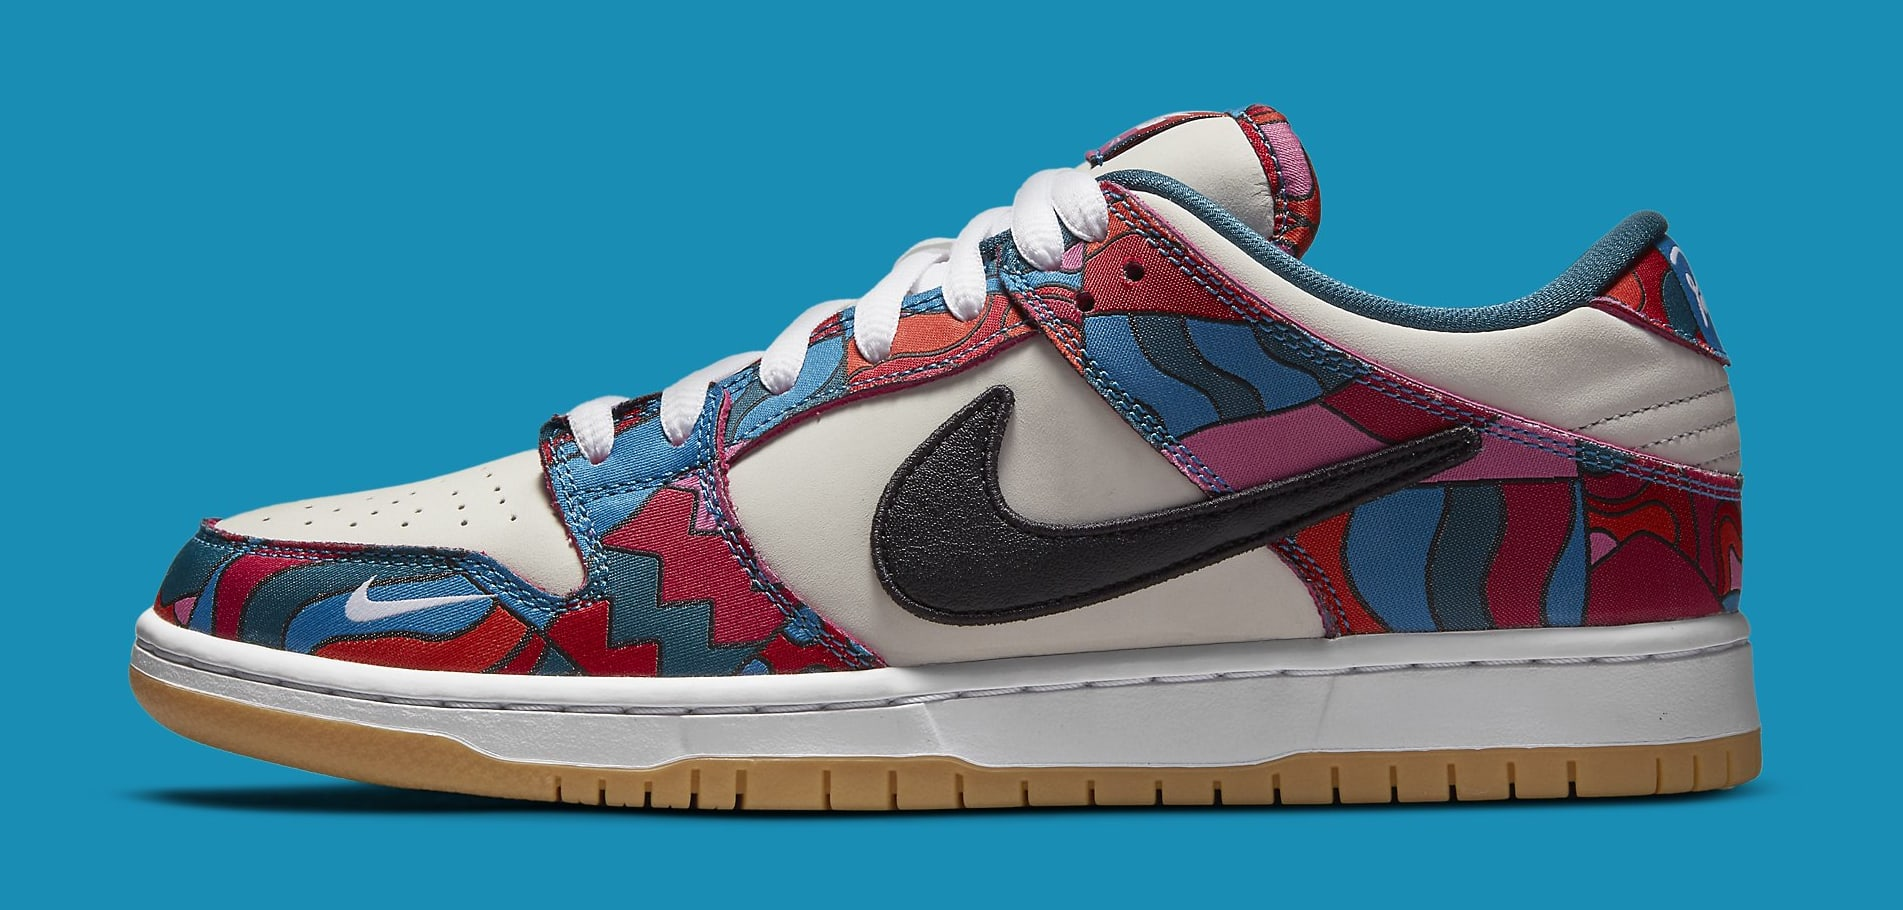 Parra x Nike SB Dunk Low DH7695-600 Lateral